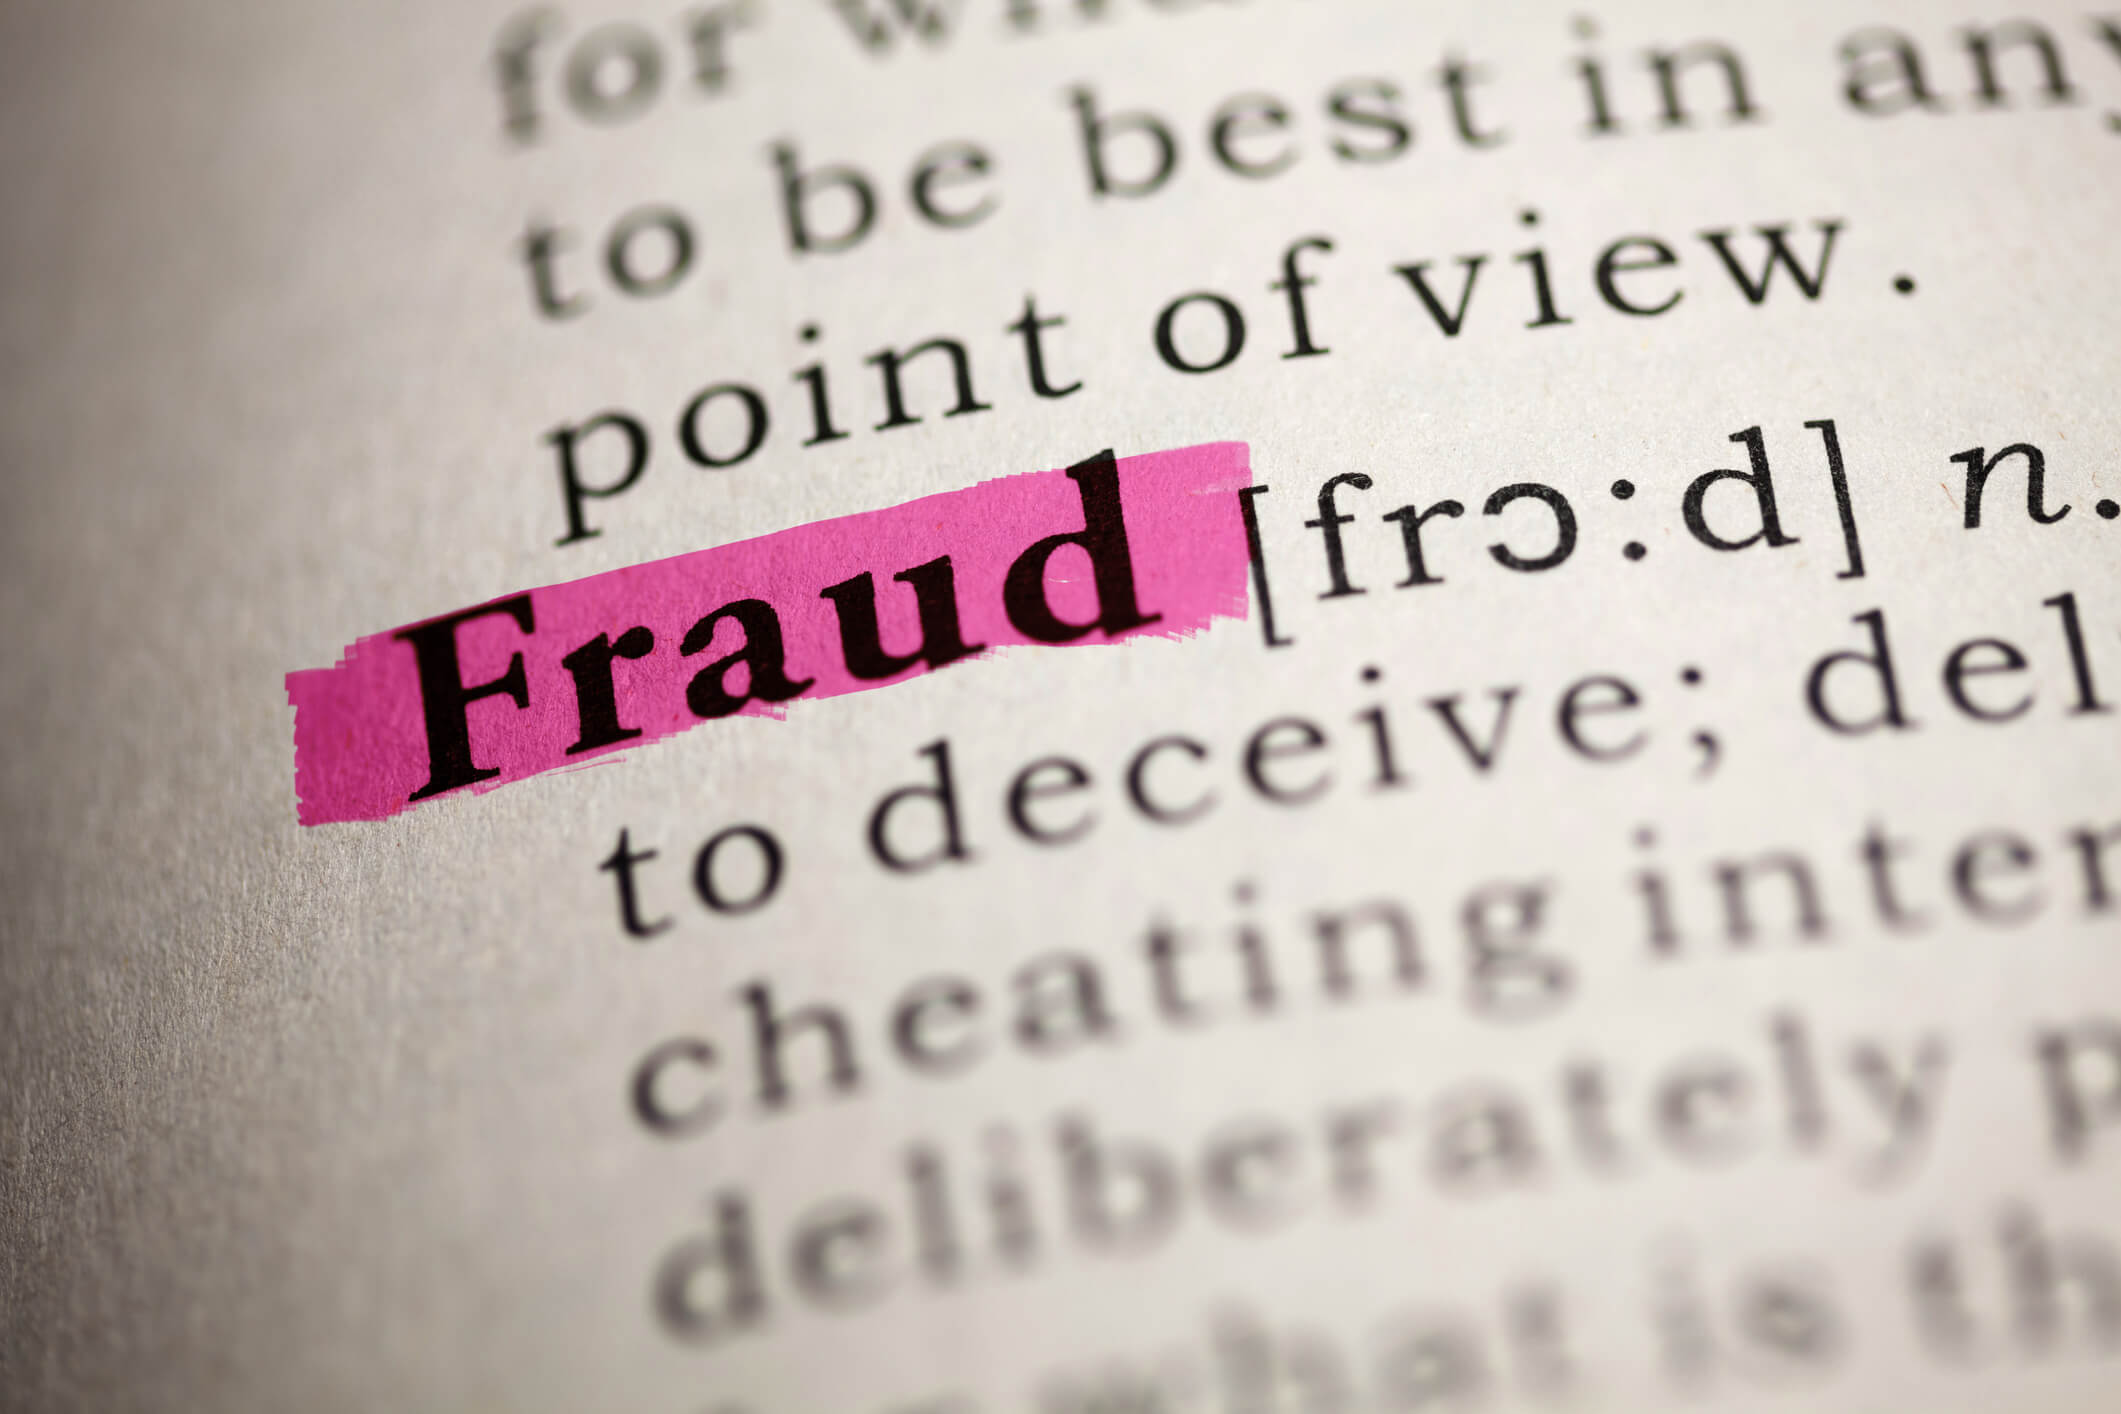 Fraud highlighted in dictionary